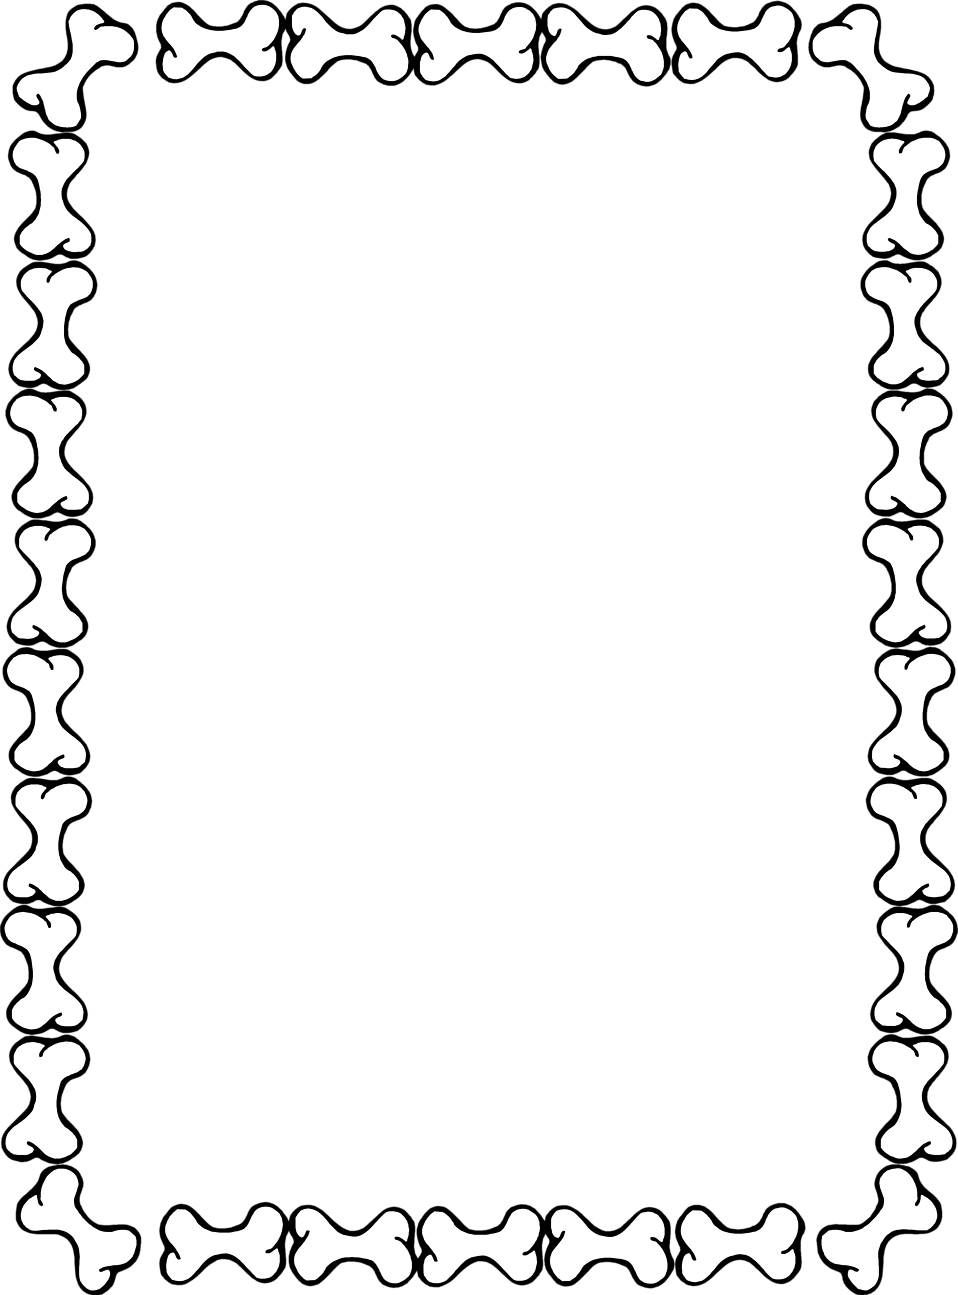 Pet Paw And Bones For Dog Pattern Vector By Nad Image 958 1295 Dog